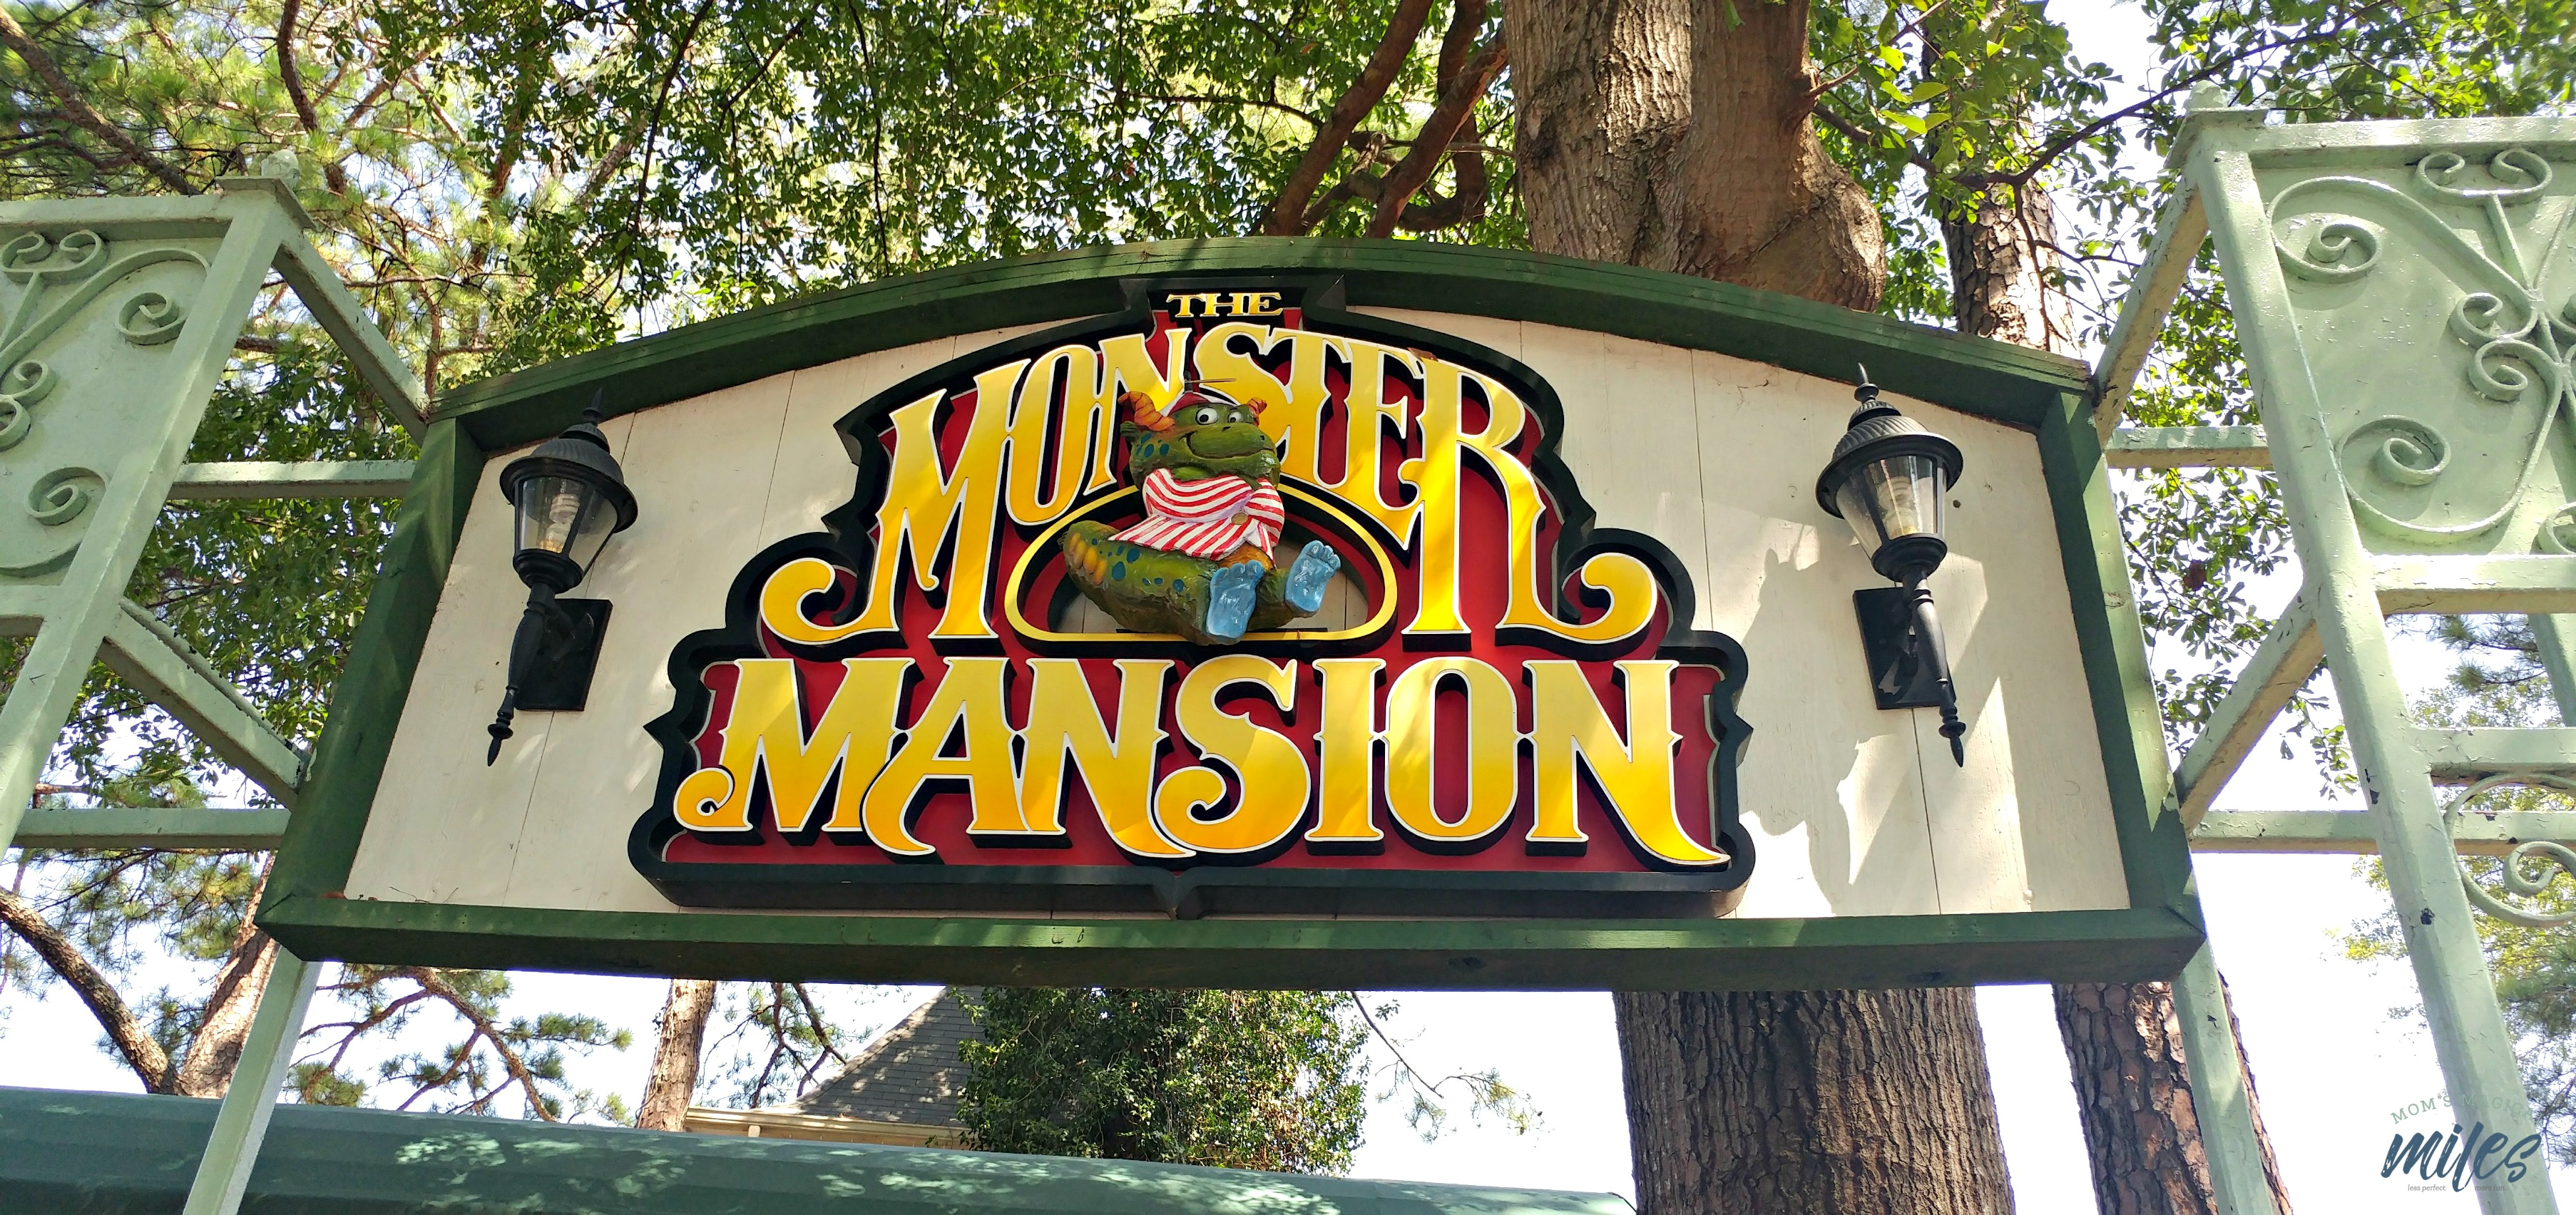 The Monster Mansion has been at Six Flags for over 30 years and is one of the original kid-friendly rides at Six Flags Over Georgia.